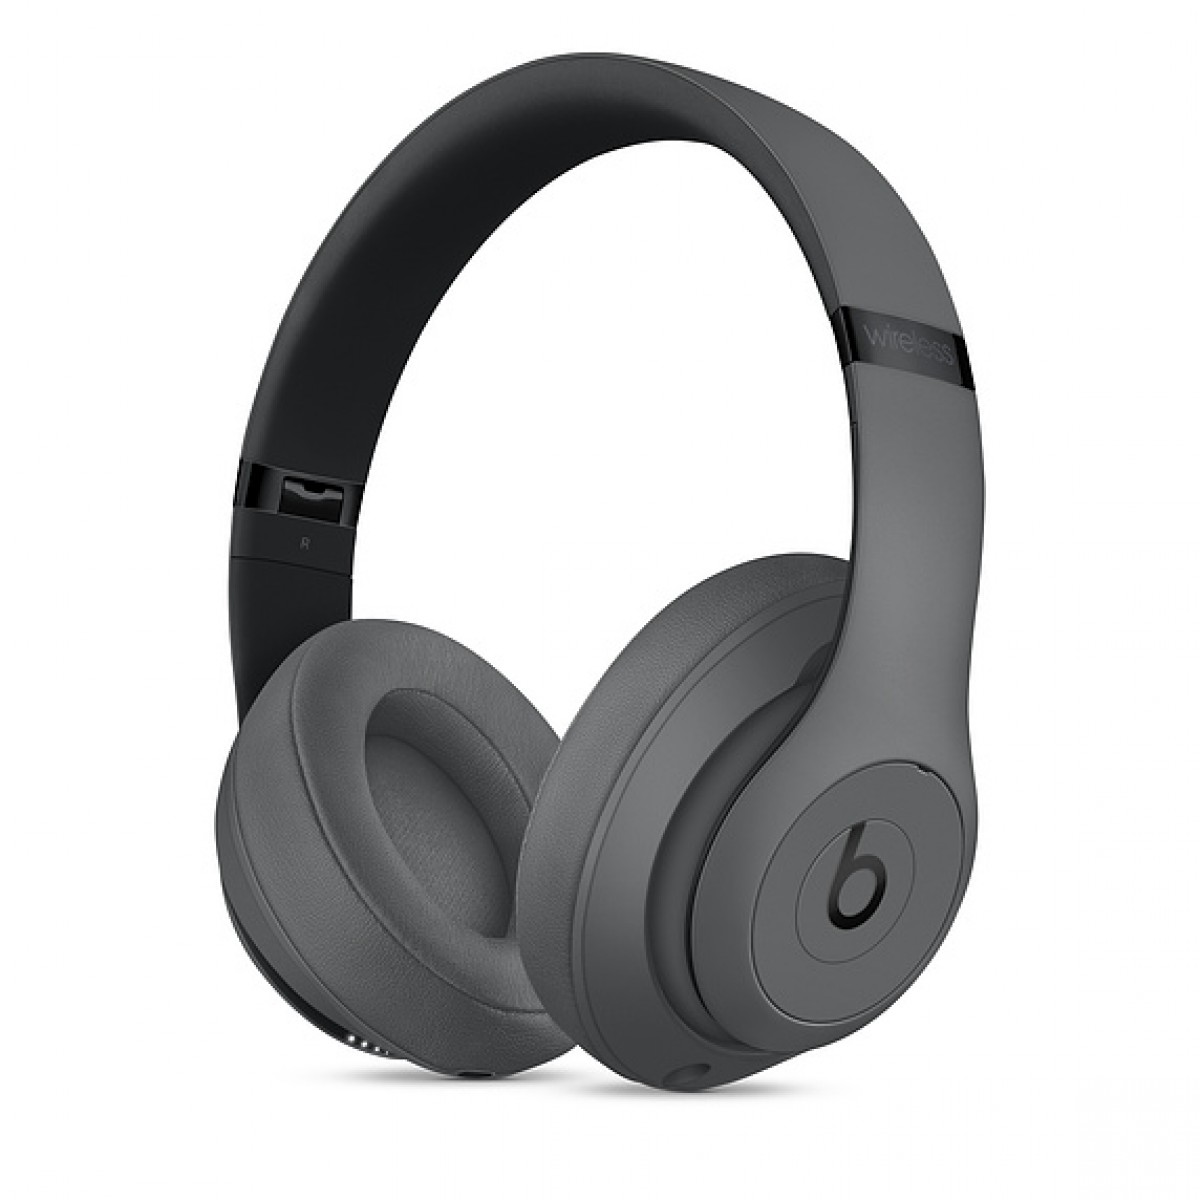 9fb2e9a61c6 Beats Studio3 Wireless Over-Ear Headphones - Grey - Over-ear ...